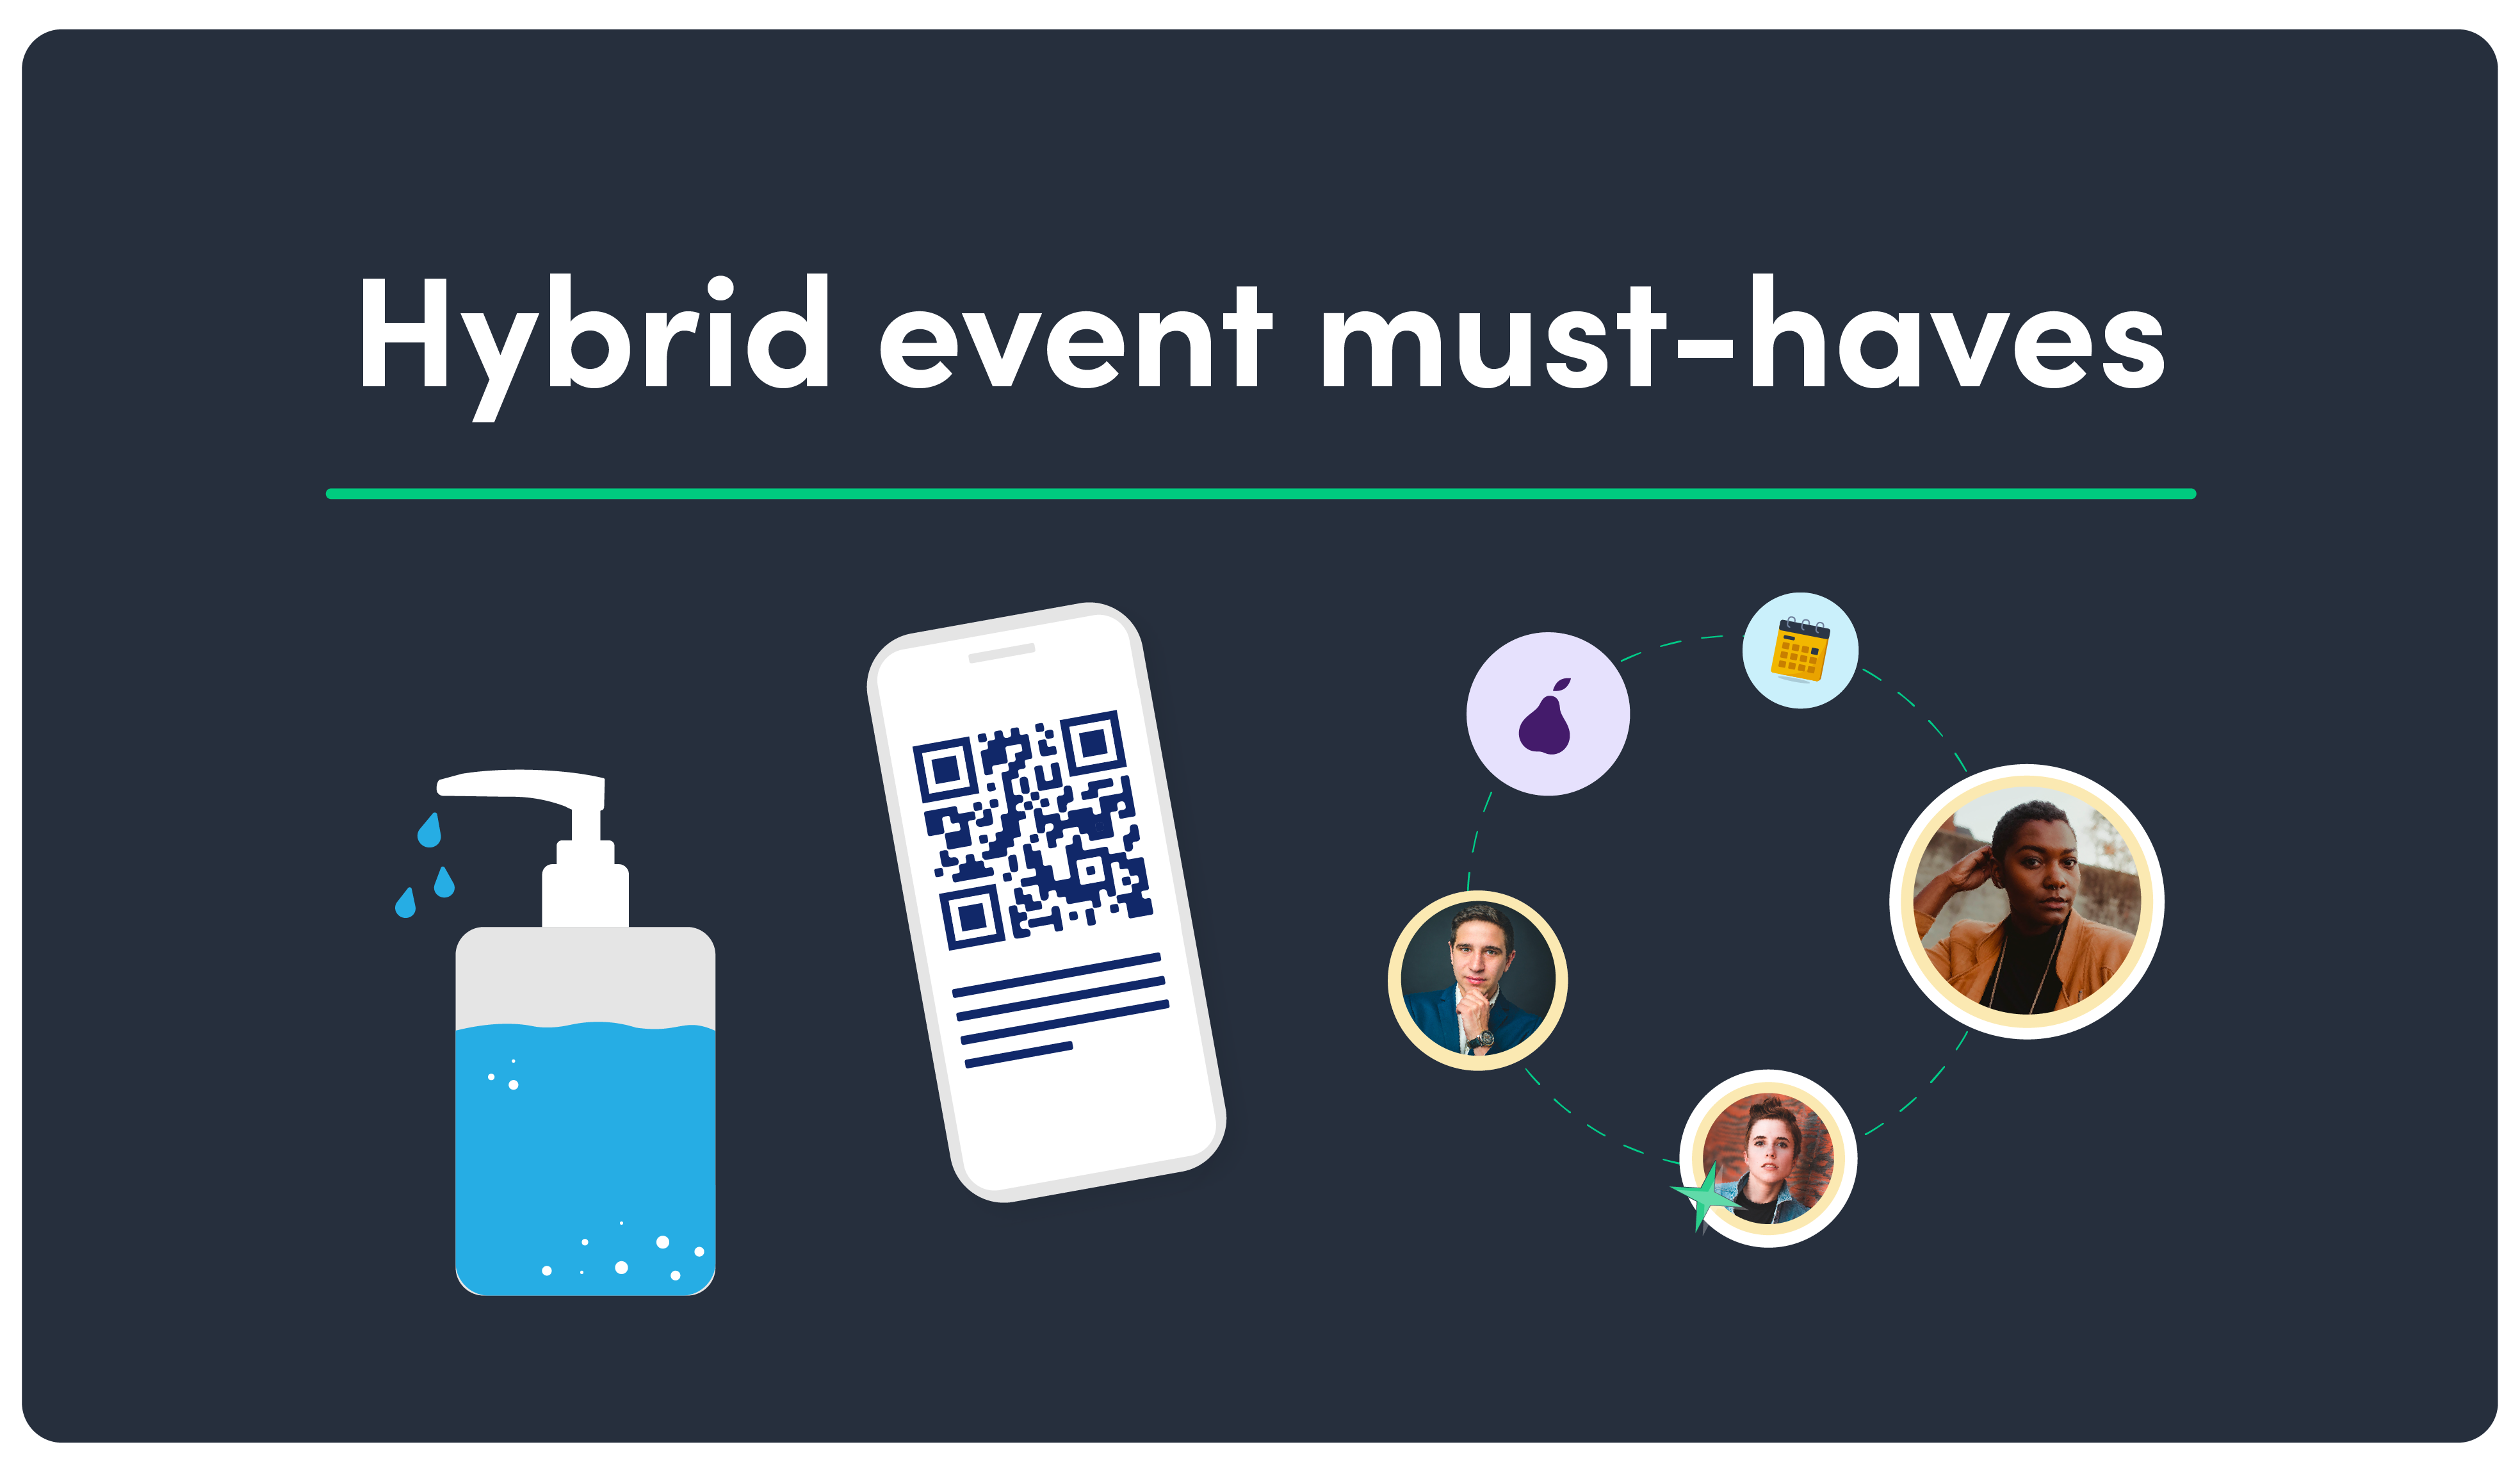 C. Hybrid event must-haves